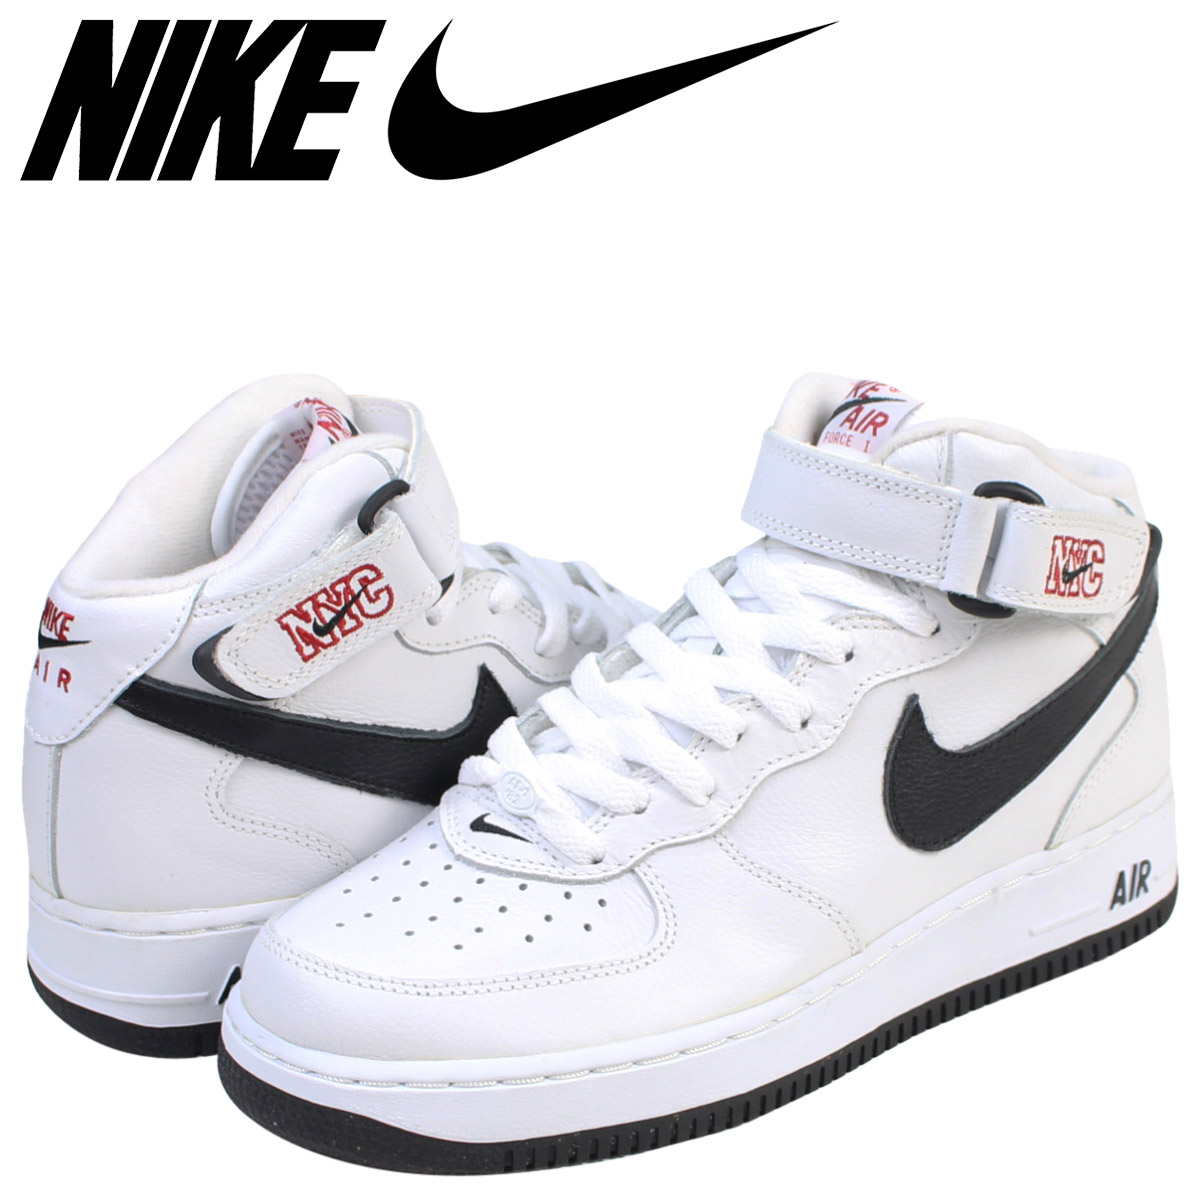 watch 883e5 982d6 NIKE Nike air force 1 mid sneakers AIR FORCE 1 MID NYC men 304,716-103  shoes white white